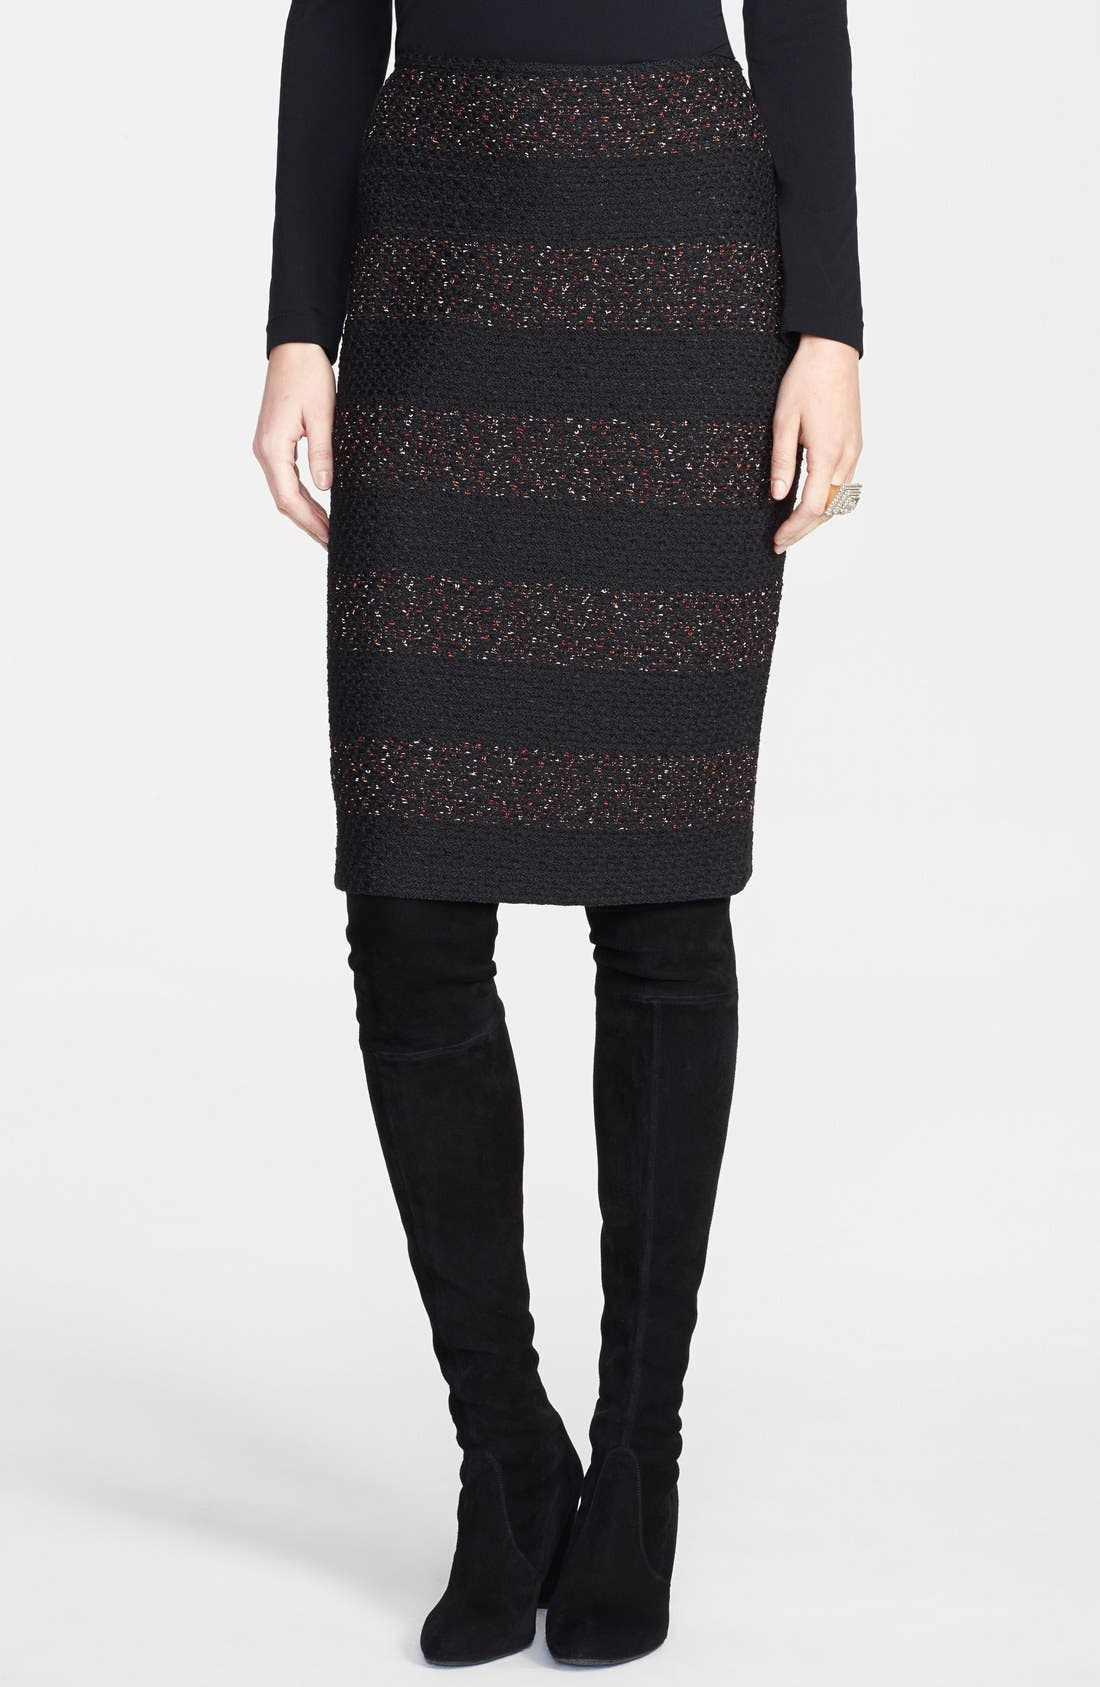 Alternate Image 1 Selected - St. John Collection Textured Fleck Knit Pencil Skirt